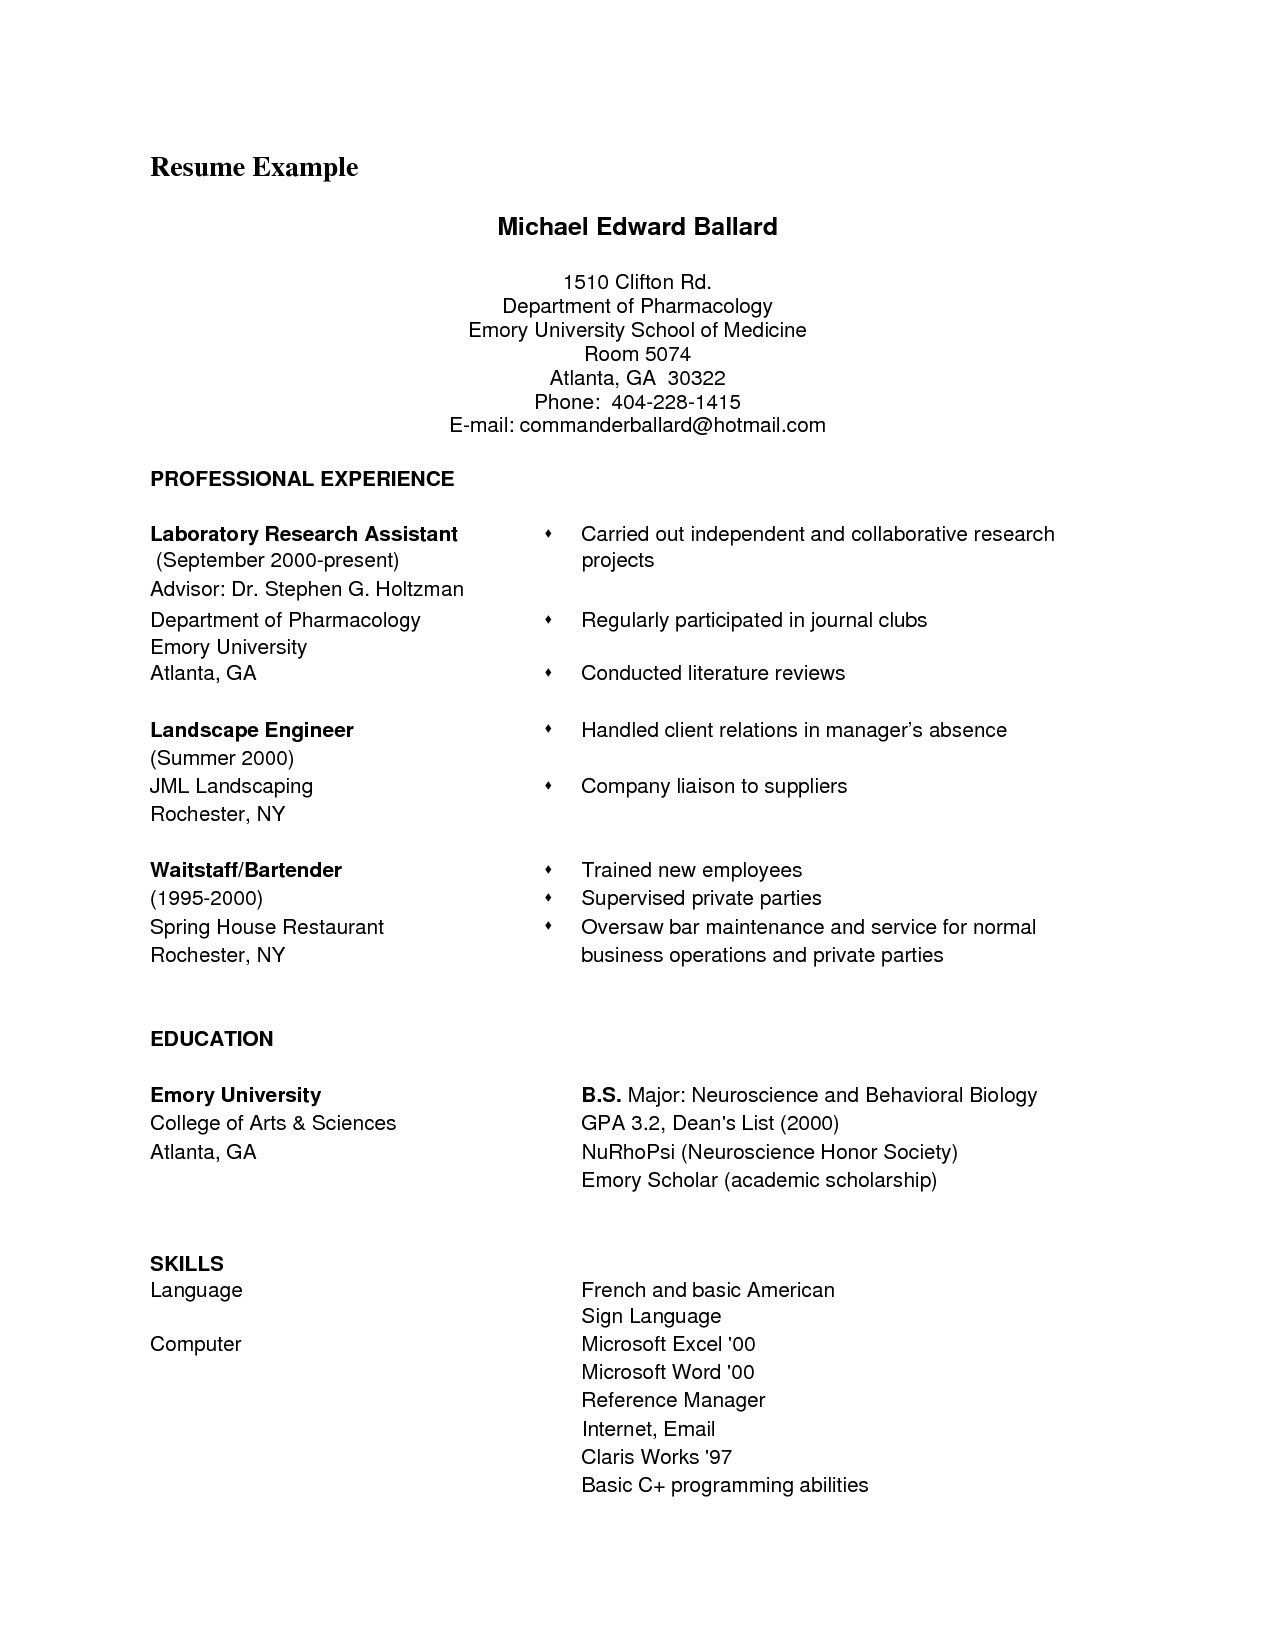 resume powerpoint template Collection-Classic Resume Templates ¢Ë†Å¡ Powerpoint Templates for Biology New Prophoto Templates 0d 3-f